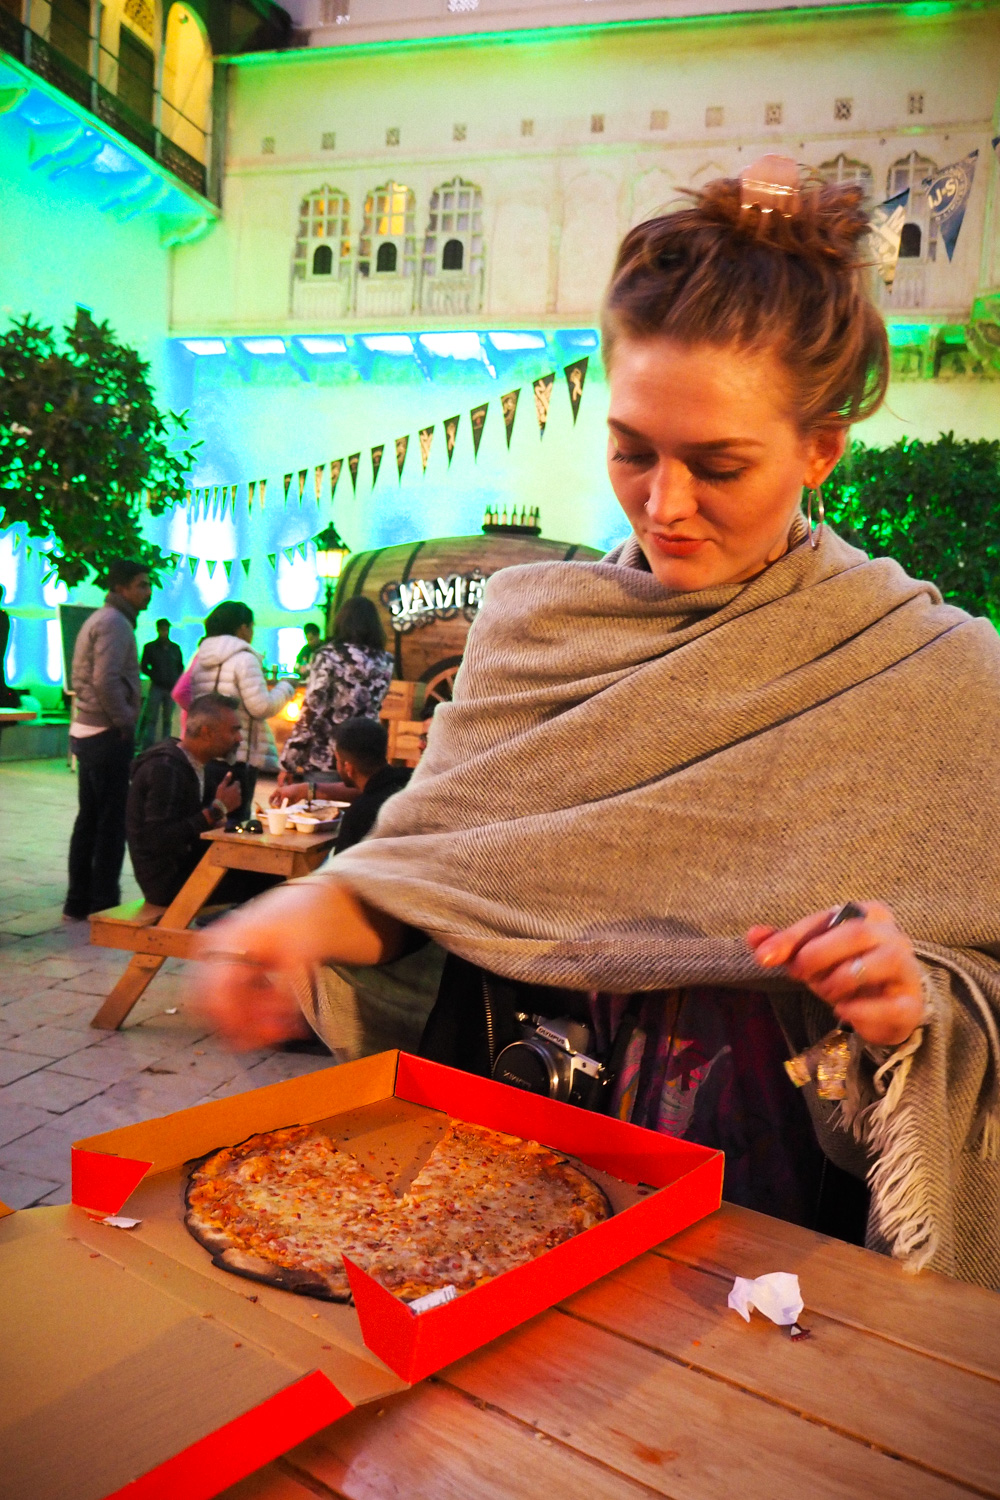 Eating pizza at Magnetic Fields Festival in Alsisar Palace